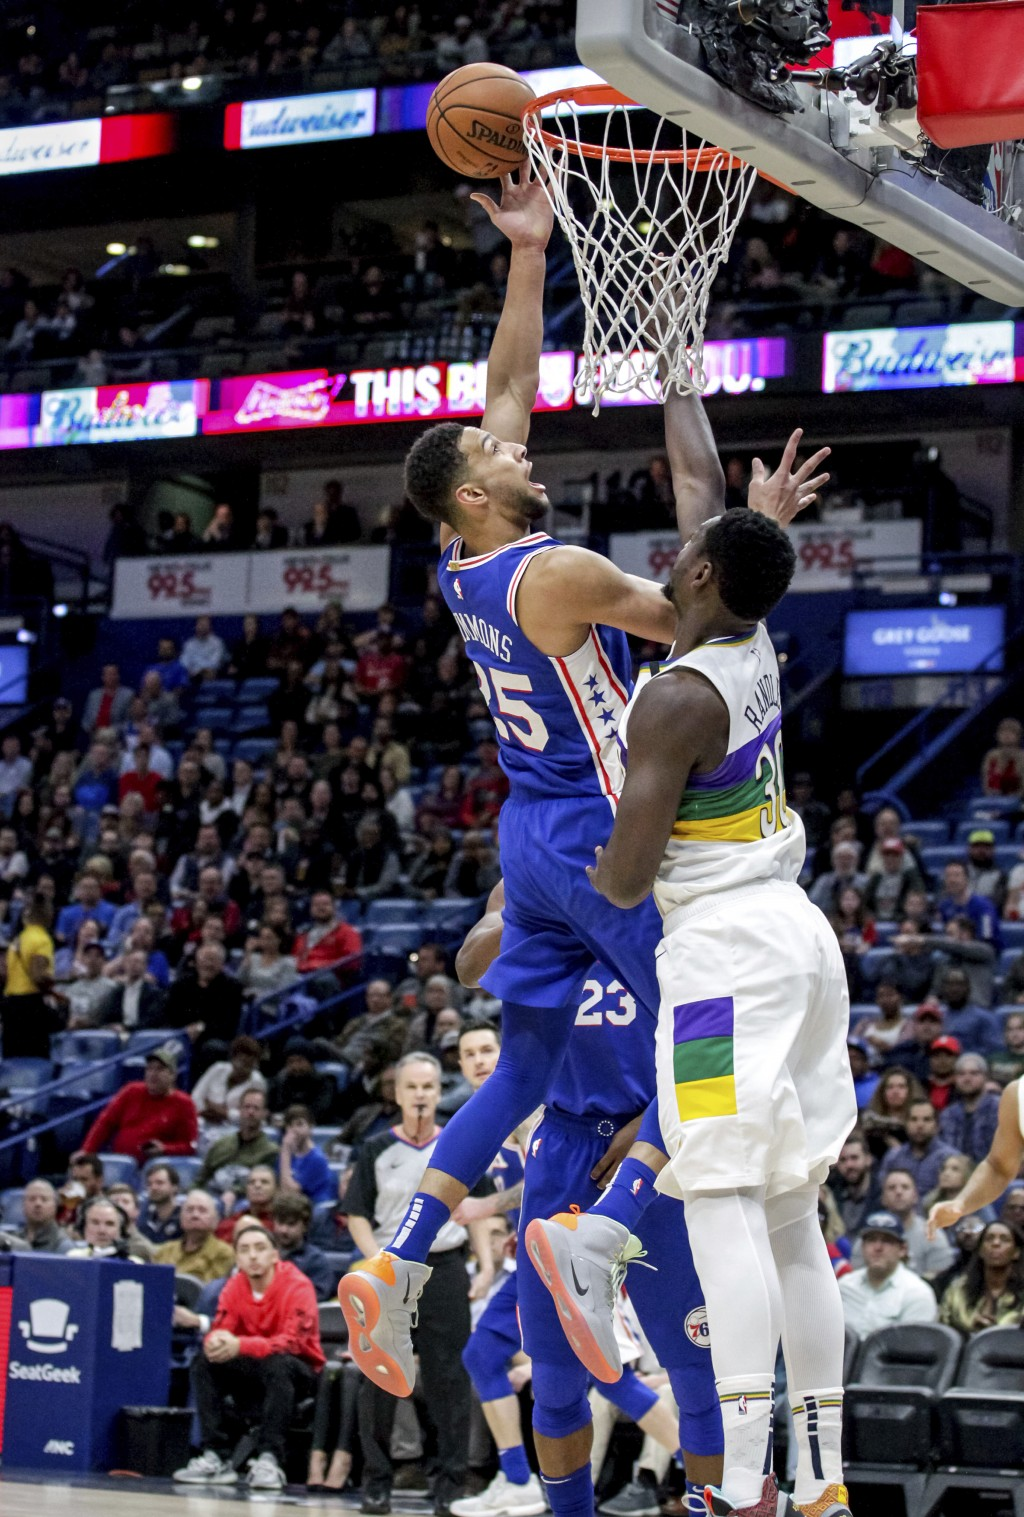 Philadelphia 76ers guard Ben Simmons (25) shoots over New Orleans Pelicans center Julius Randle (30) in the first half of an NBA basketball game in Ne...